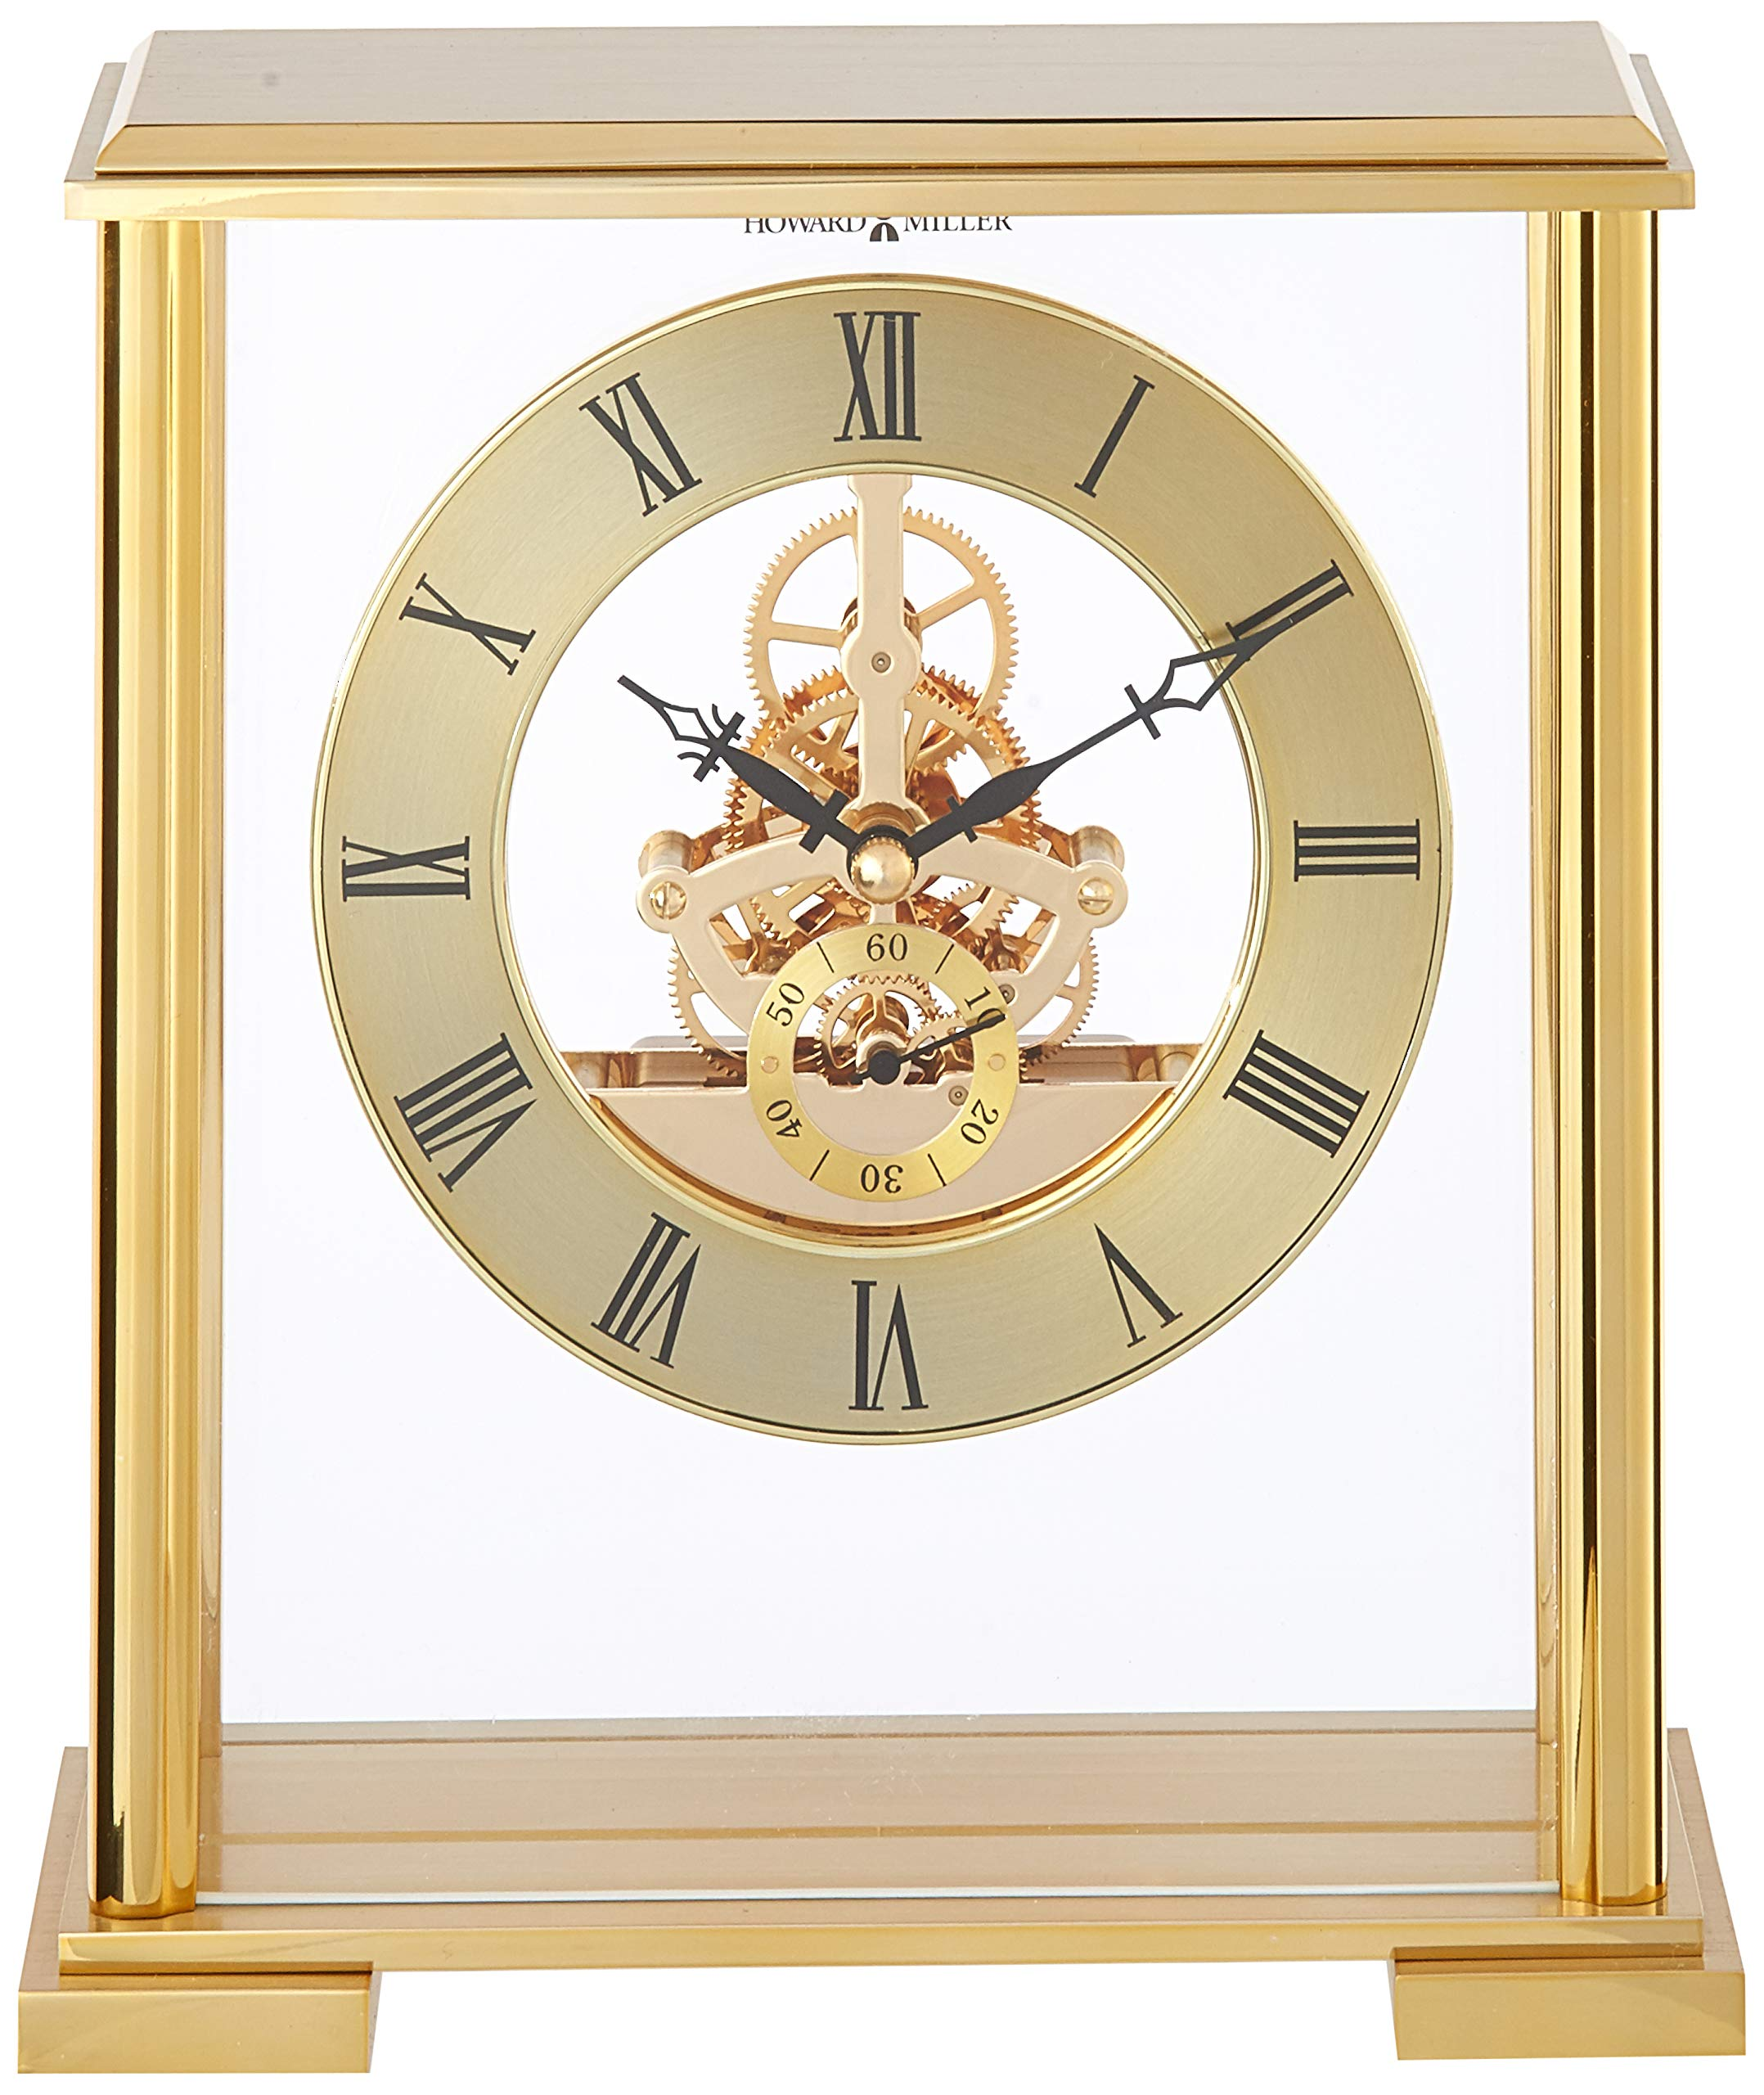 Howard Miller 645-622 Fairview Table Clock - Brushed and polished brass-finished metal table clock with glass front and side panels. The polished brass-finished skeleton movement is suspended by a clear acrylic panel between the front and back glass, so as to appear to float within the case. Circular spun brass-finished numeral ring features black Roman numerals and hands, with a separate seconds track. - clocks, bedroom-decor, bedroom - 81Bho%2Bbt7aL -